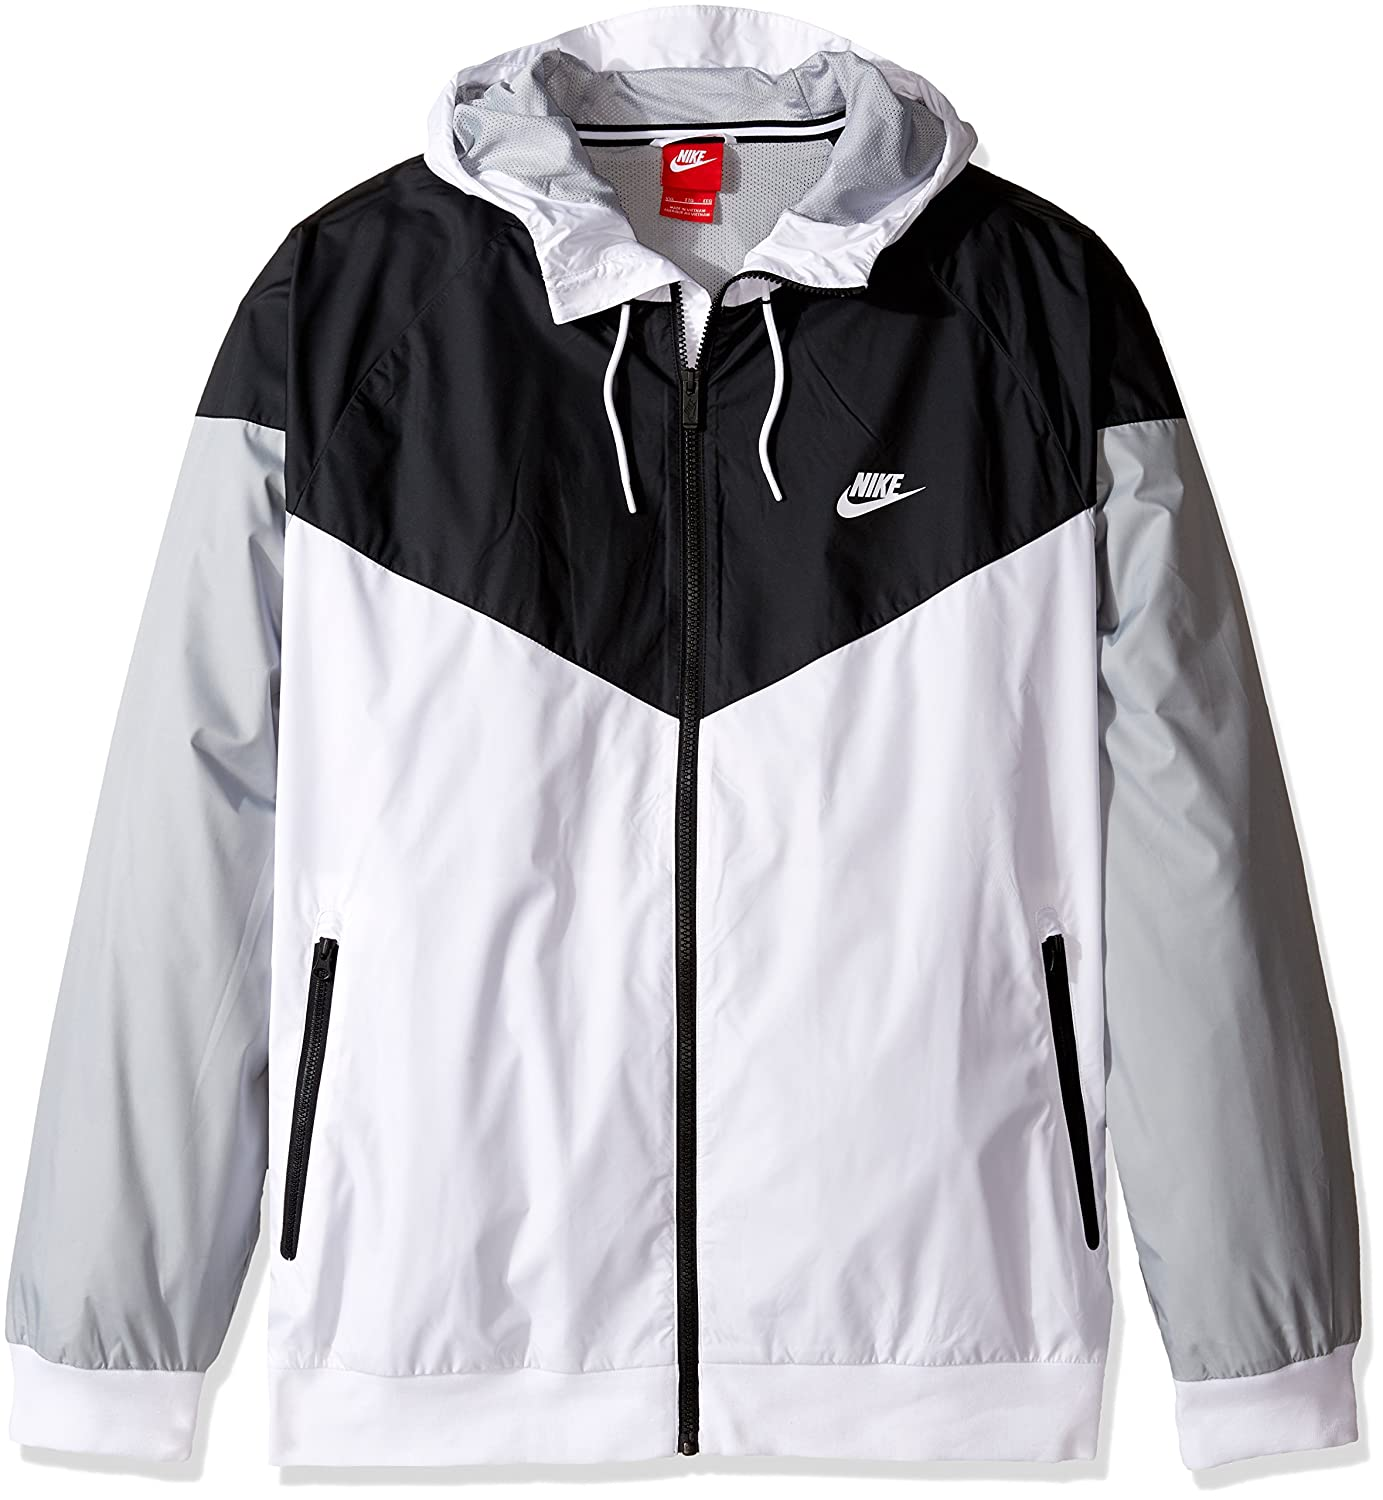 Cheap Mens Windbreaker Jackets Jackets Review